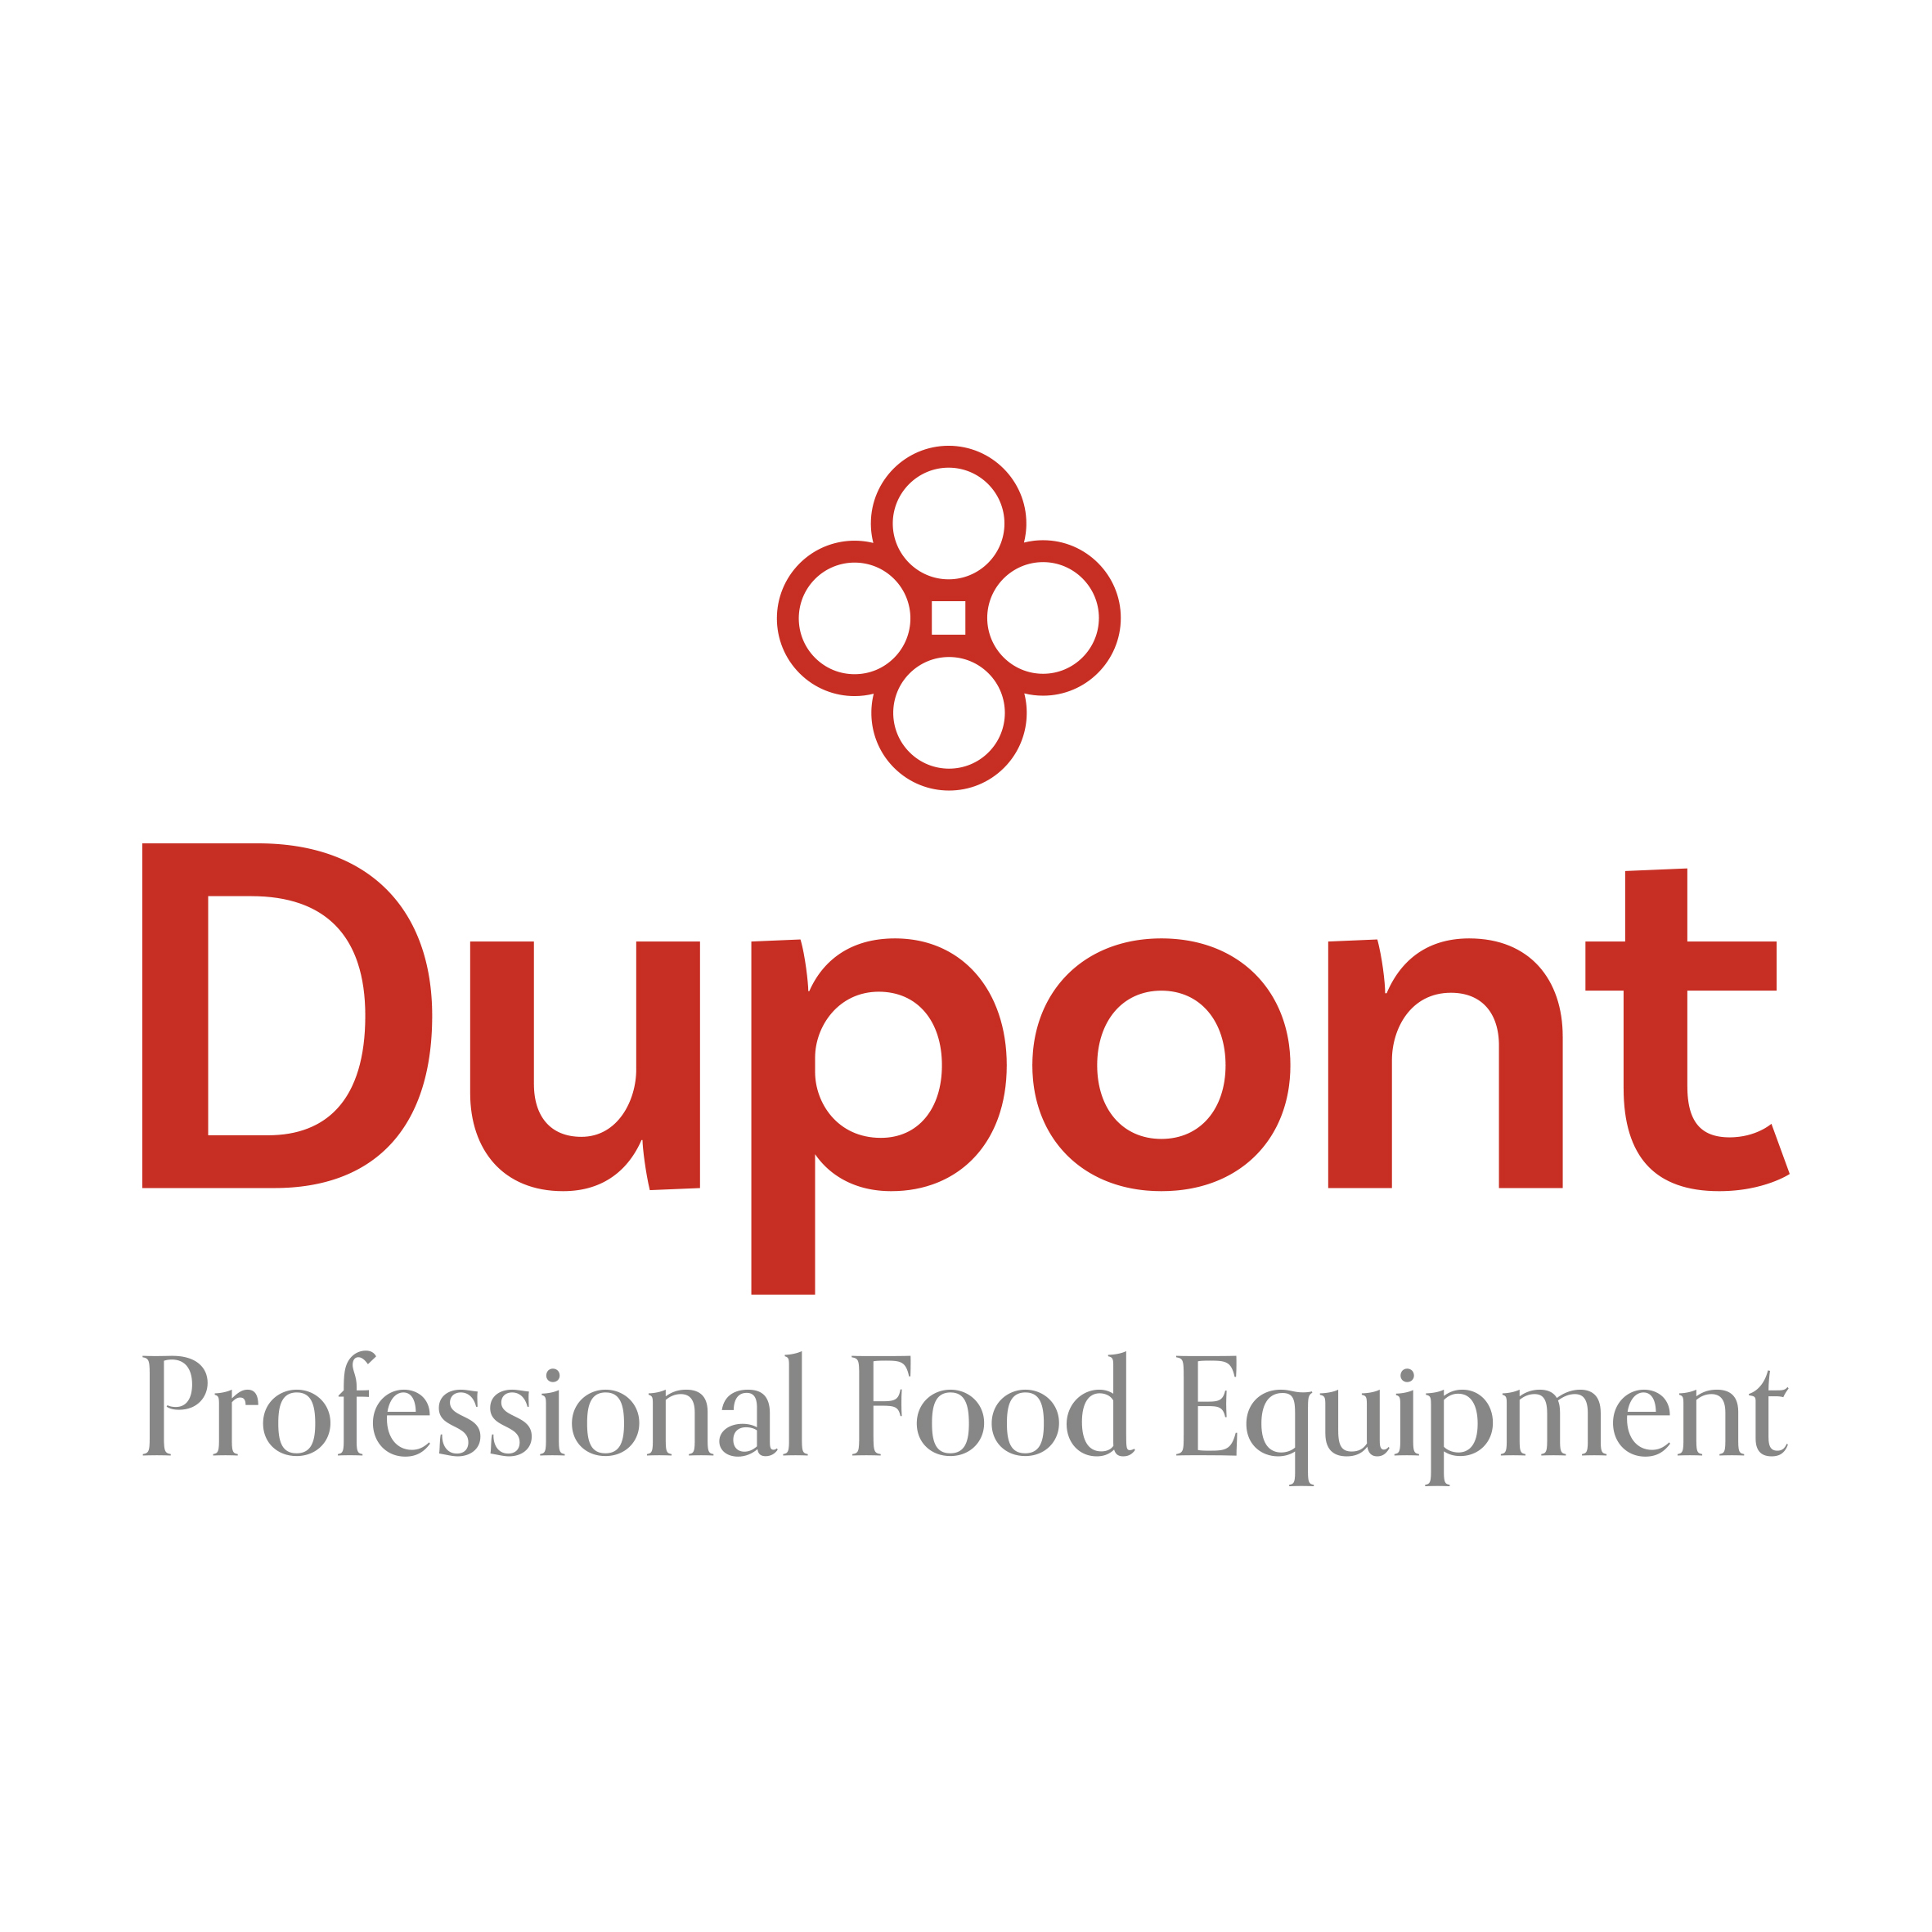 Dupont Professional Food Equipment